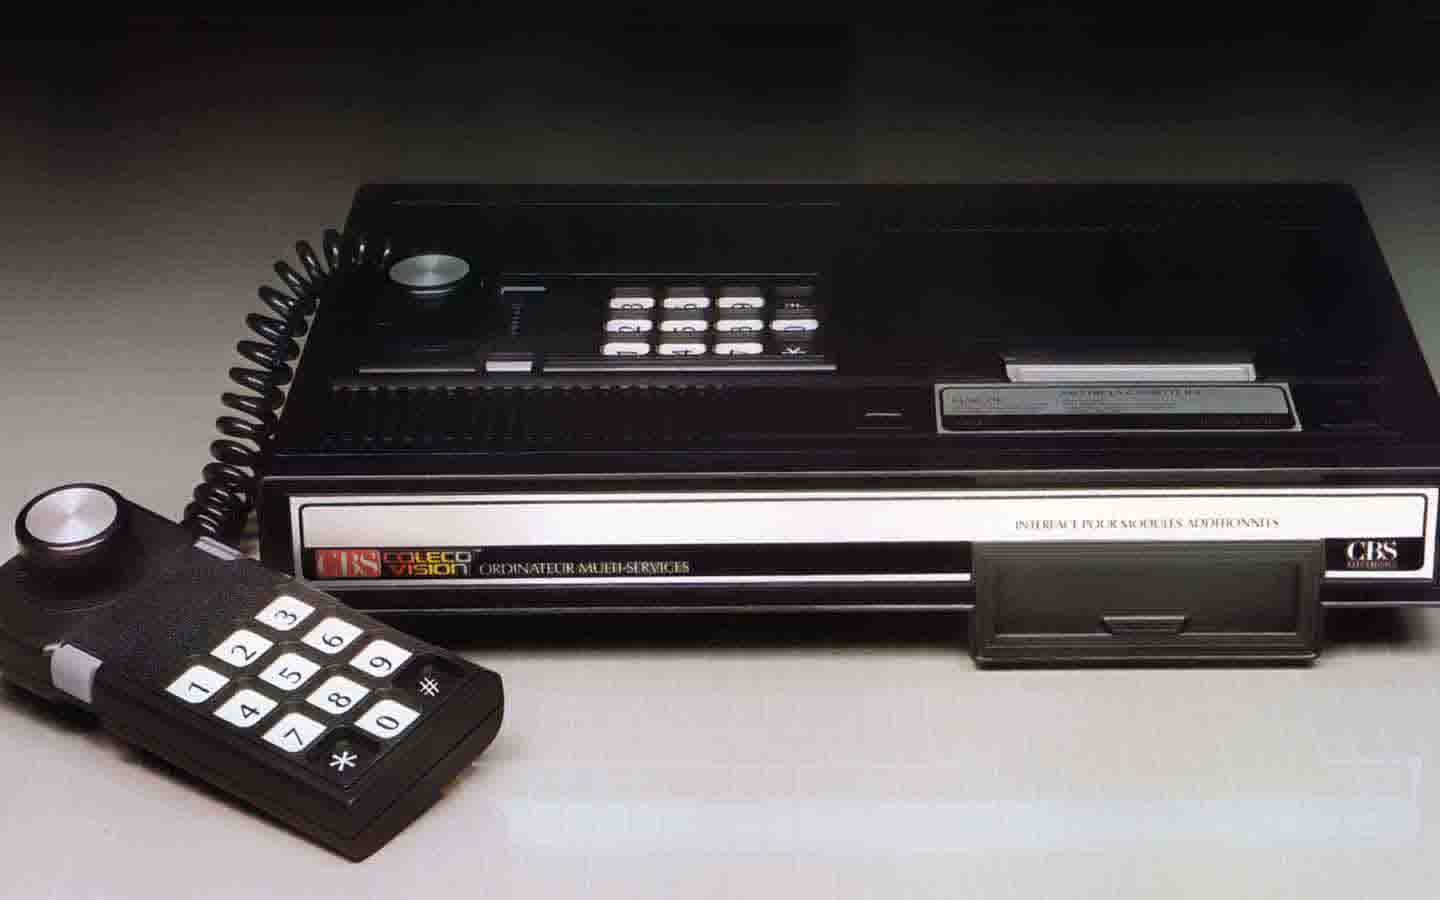 ColecoVision : reference for games and artworks for